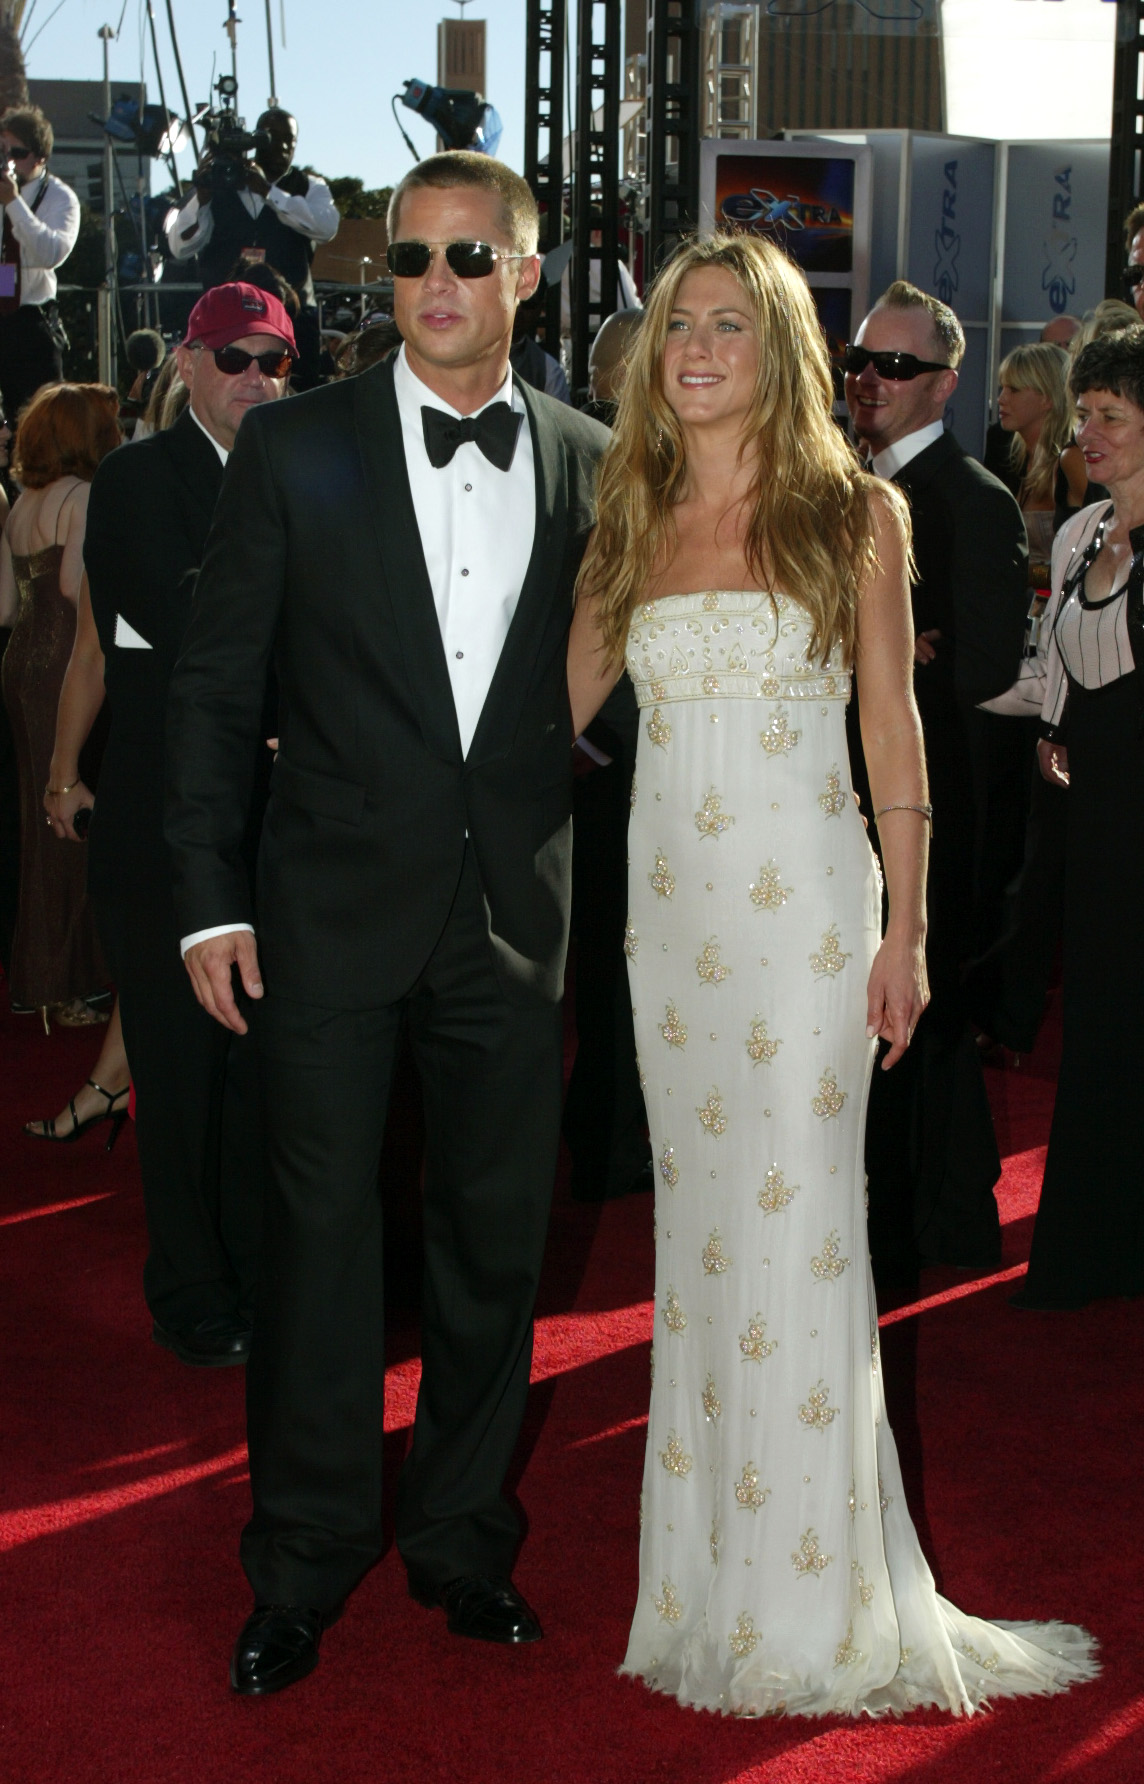 Sep 19, 2004 - Los Angeles, California, USA - BRAD PITT and his wife JENNIFER ANISTON share an intimate moment on the red carpet at the 56th Annual Emmy Awards at the Shrine Auditorium., Image: 30001363, License: Rights-managed, Restrictions: * Los Angeles Times and U.S. Tabloid Rights OUT *, Model Release: no, Credit line: Profimedia, Zuma Press - Entertaiment